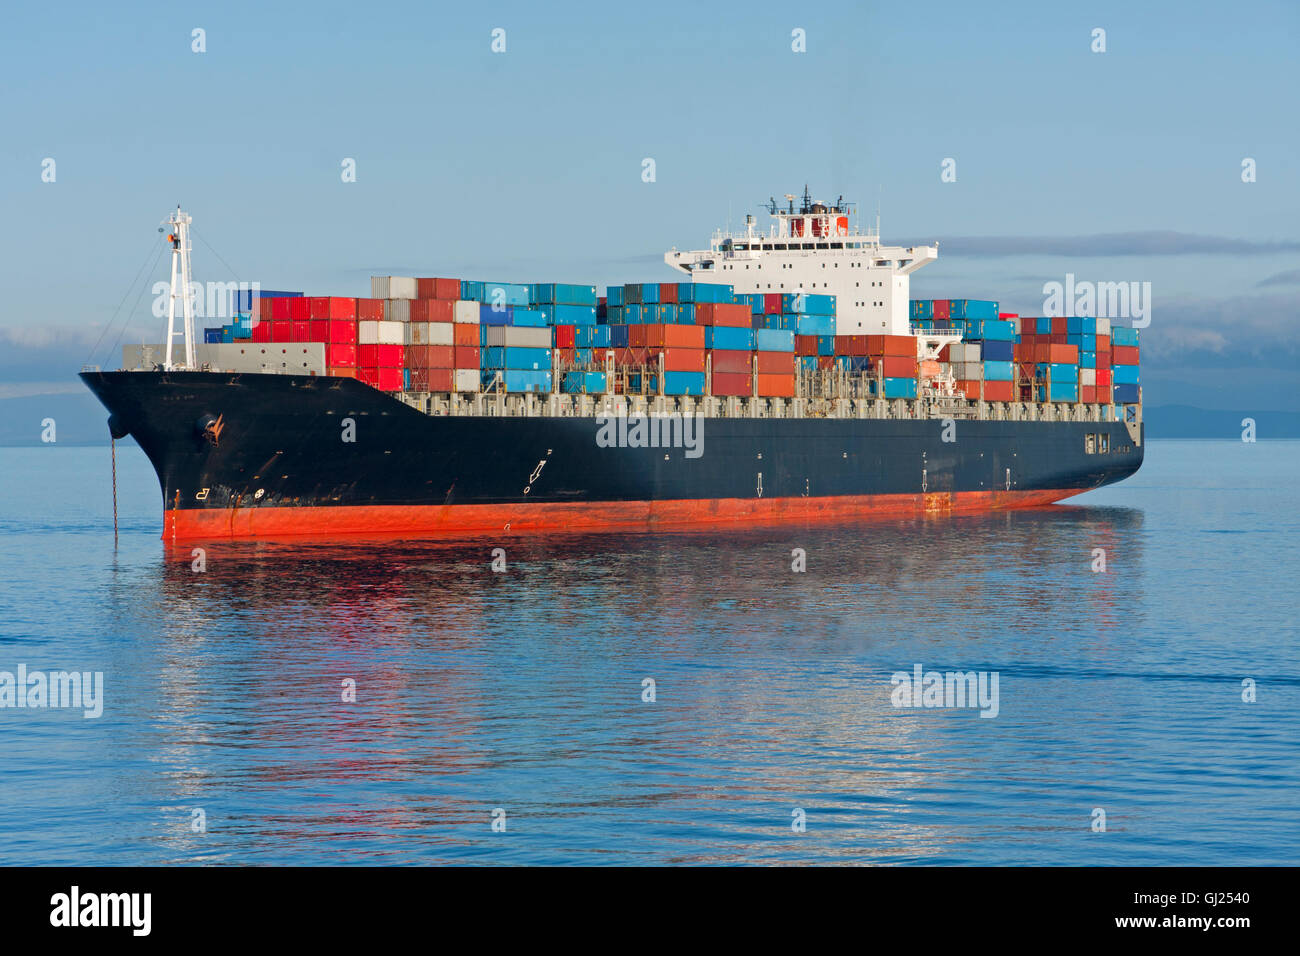 An aerial view of a container ship. - Stock Image